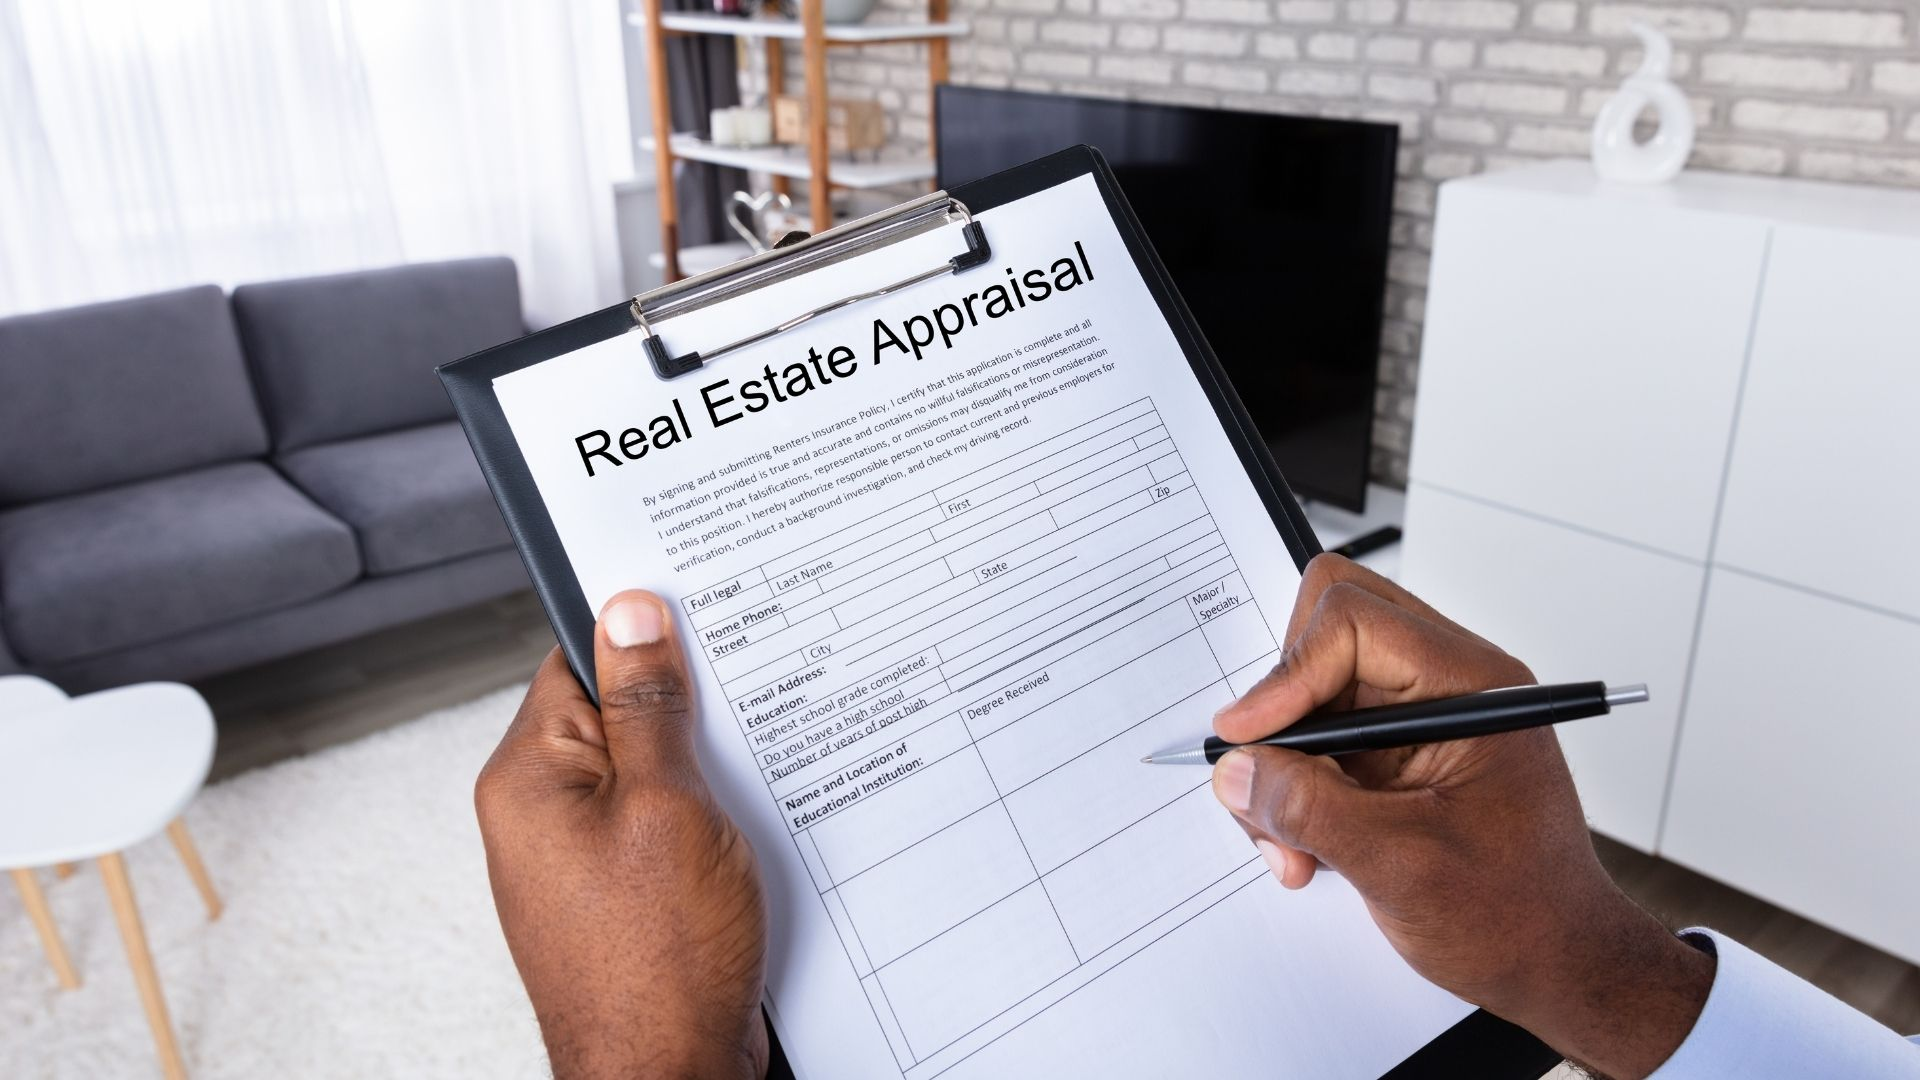 Appraiser inspecting a home to determine value